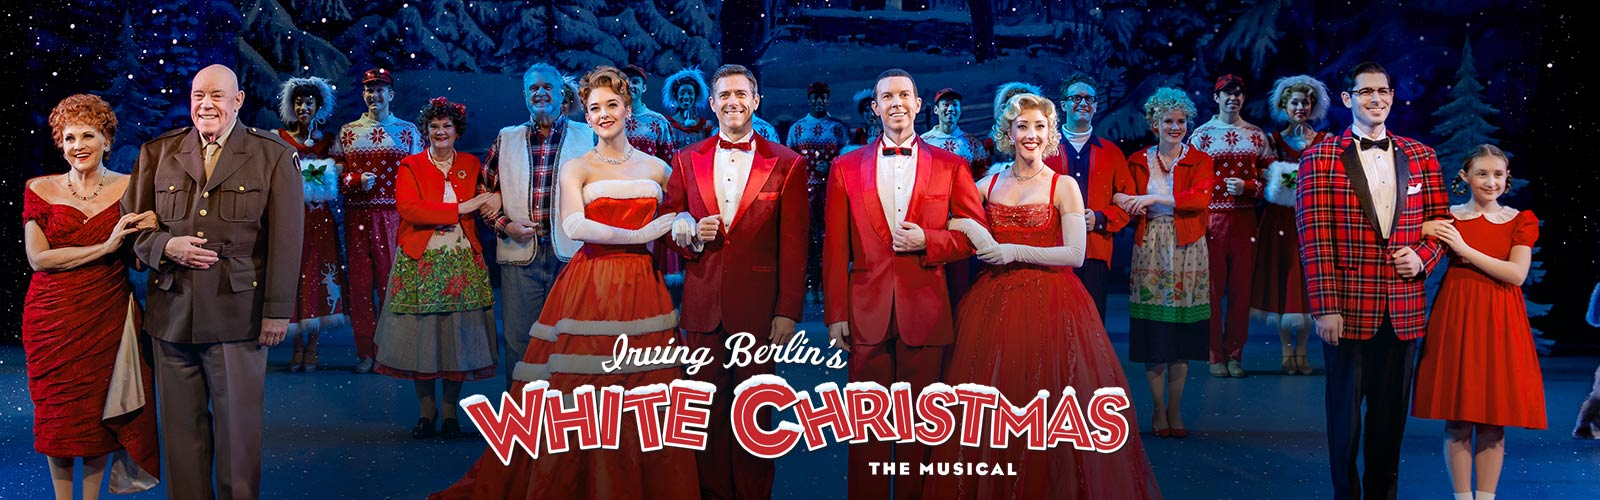 White Christmas Musical.Irving Berlin S White Christmas Des Moines Performing Arts